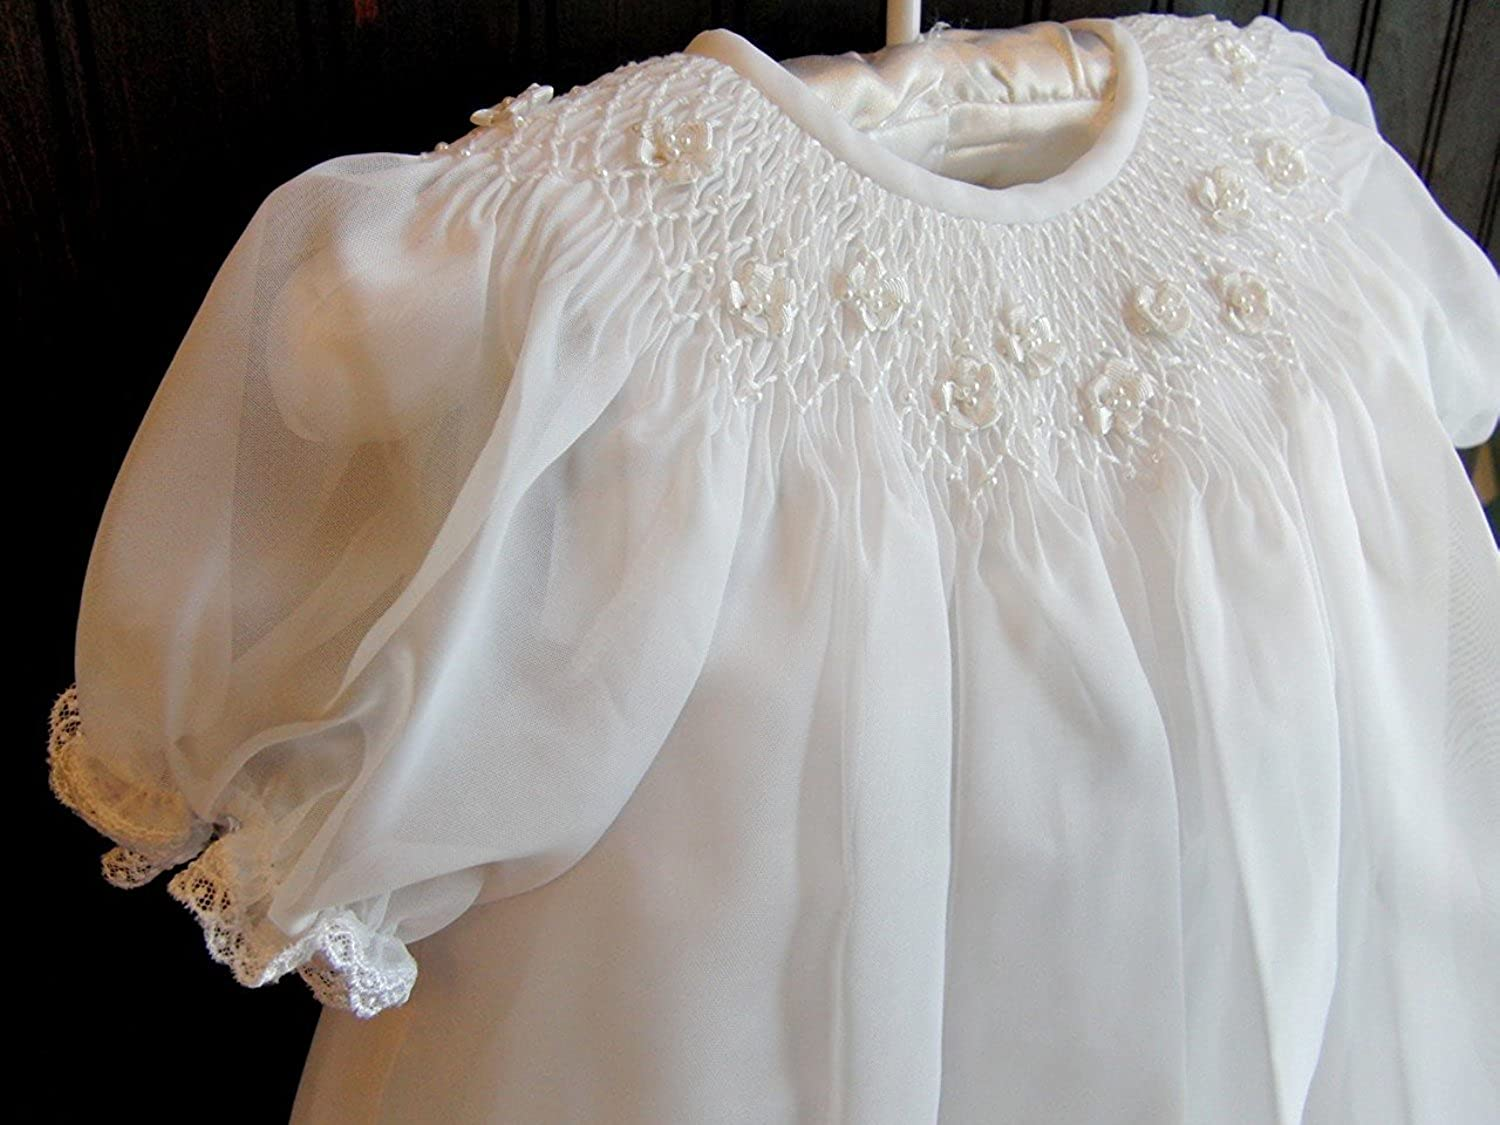 Kelaixiang Jewel White Baby Christening Outfit Long Robe Applique